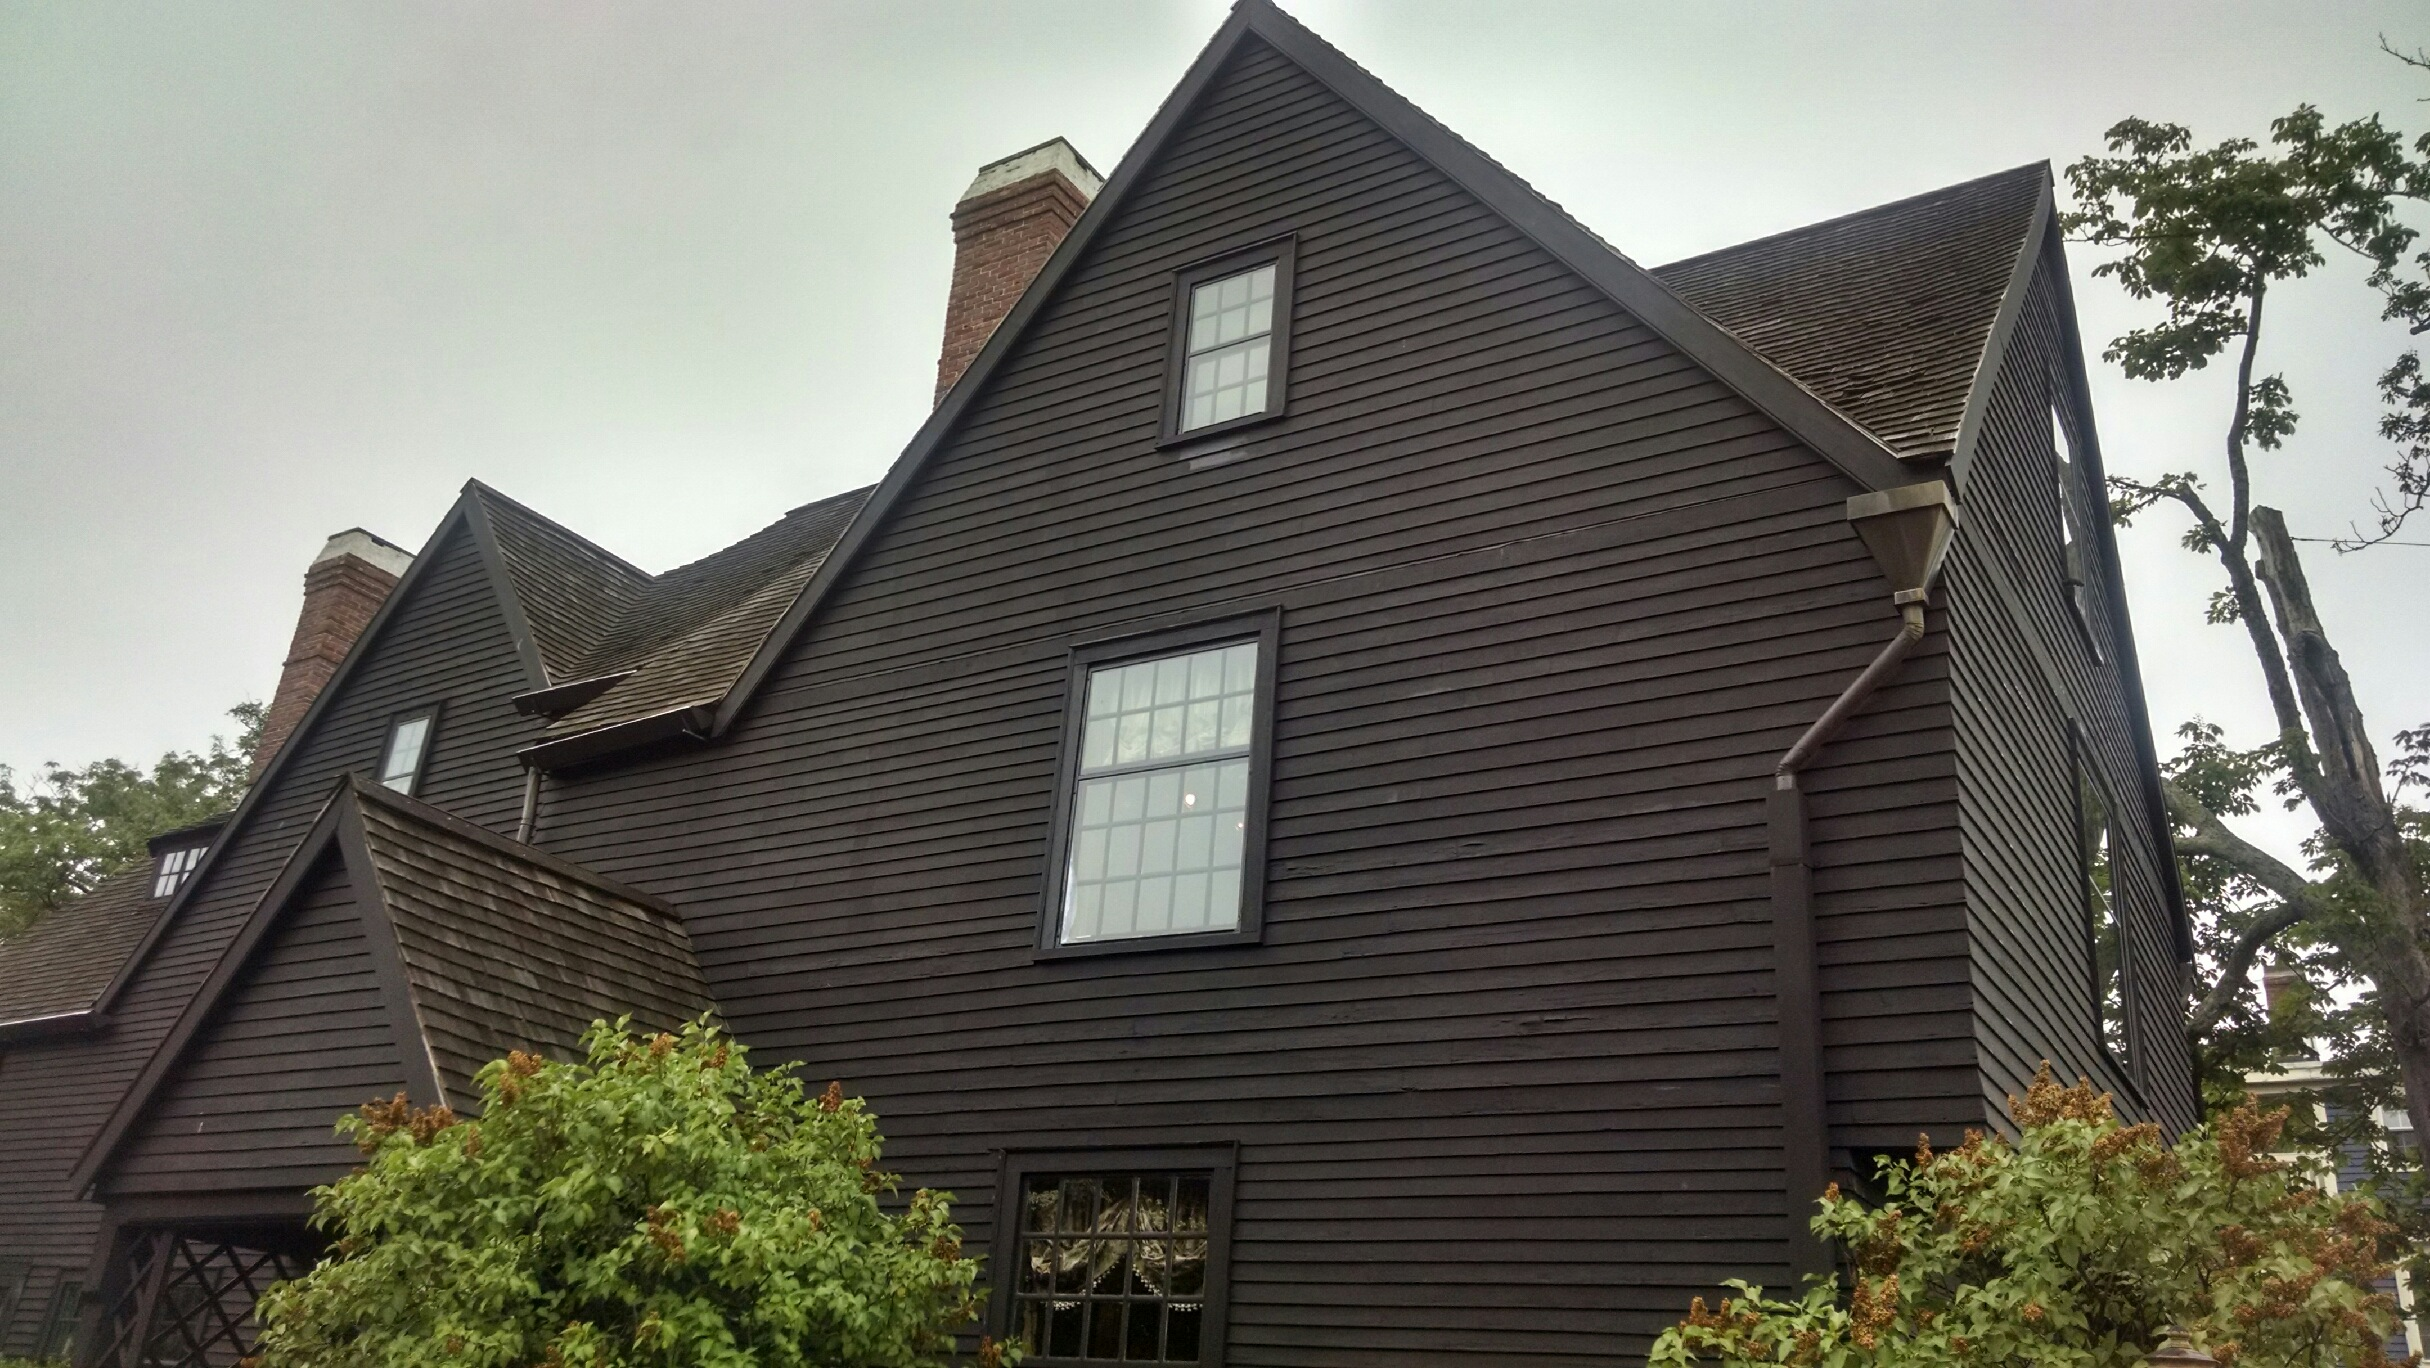 house of seven gables symbolism essay Stuck writing about a house of the seven gables essays find thousands of free house of the seven gables essays, term papers, research papers, book reports.